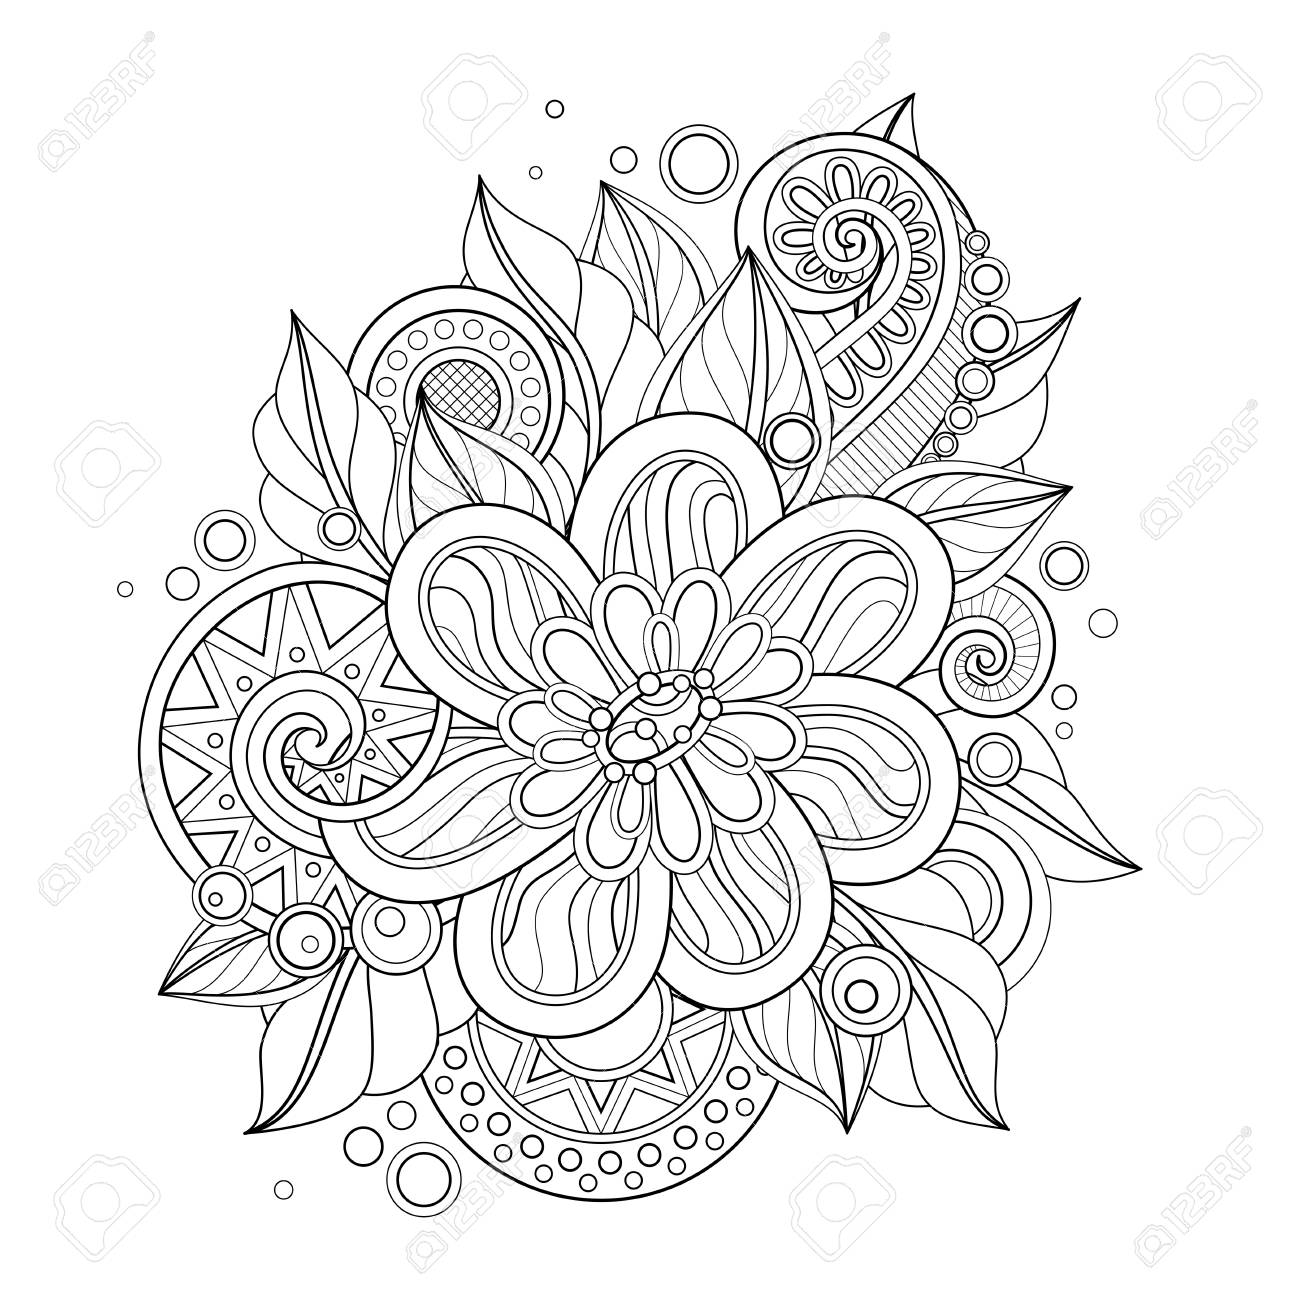 Monochrome Floral Illustration in Doodle Style. Decorative Composition with Flowers, Leaves and Swirls. Elegant Natural Motif. Coloring Book Page. Vector Contour Art. Abstract Design Element - 126286514